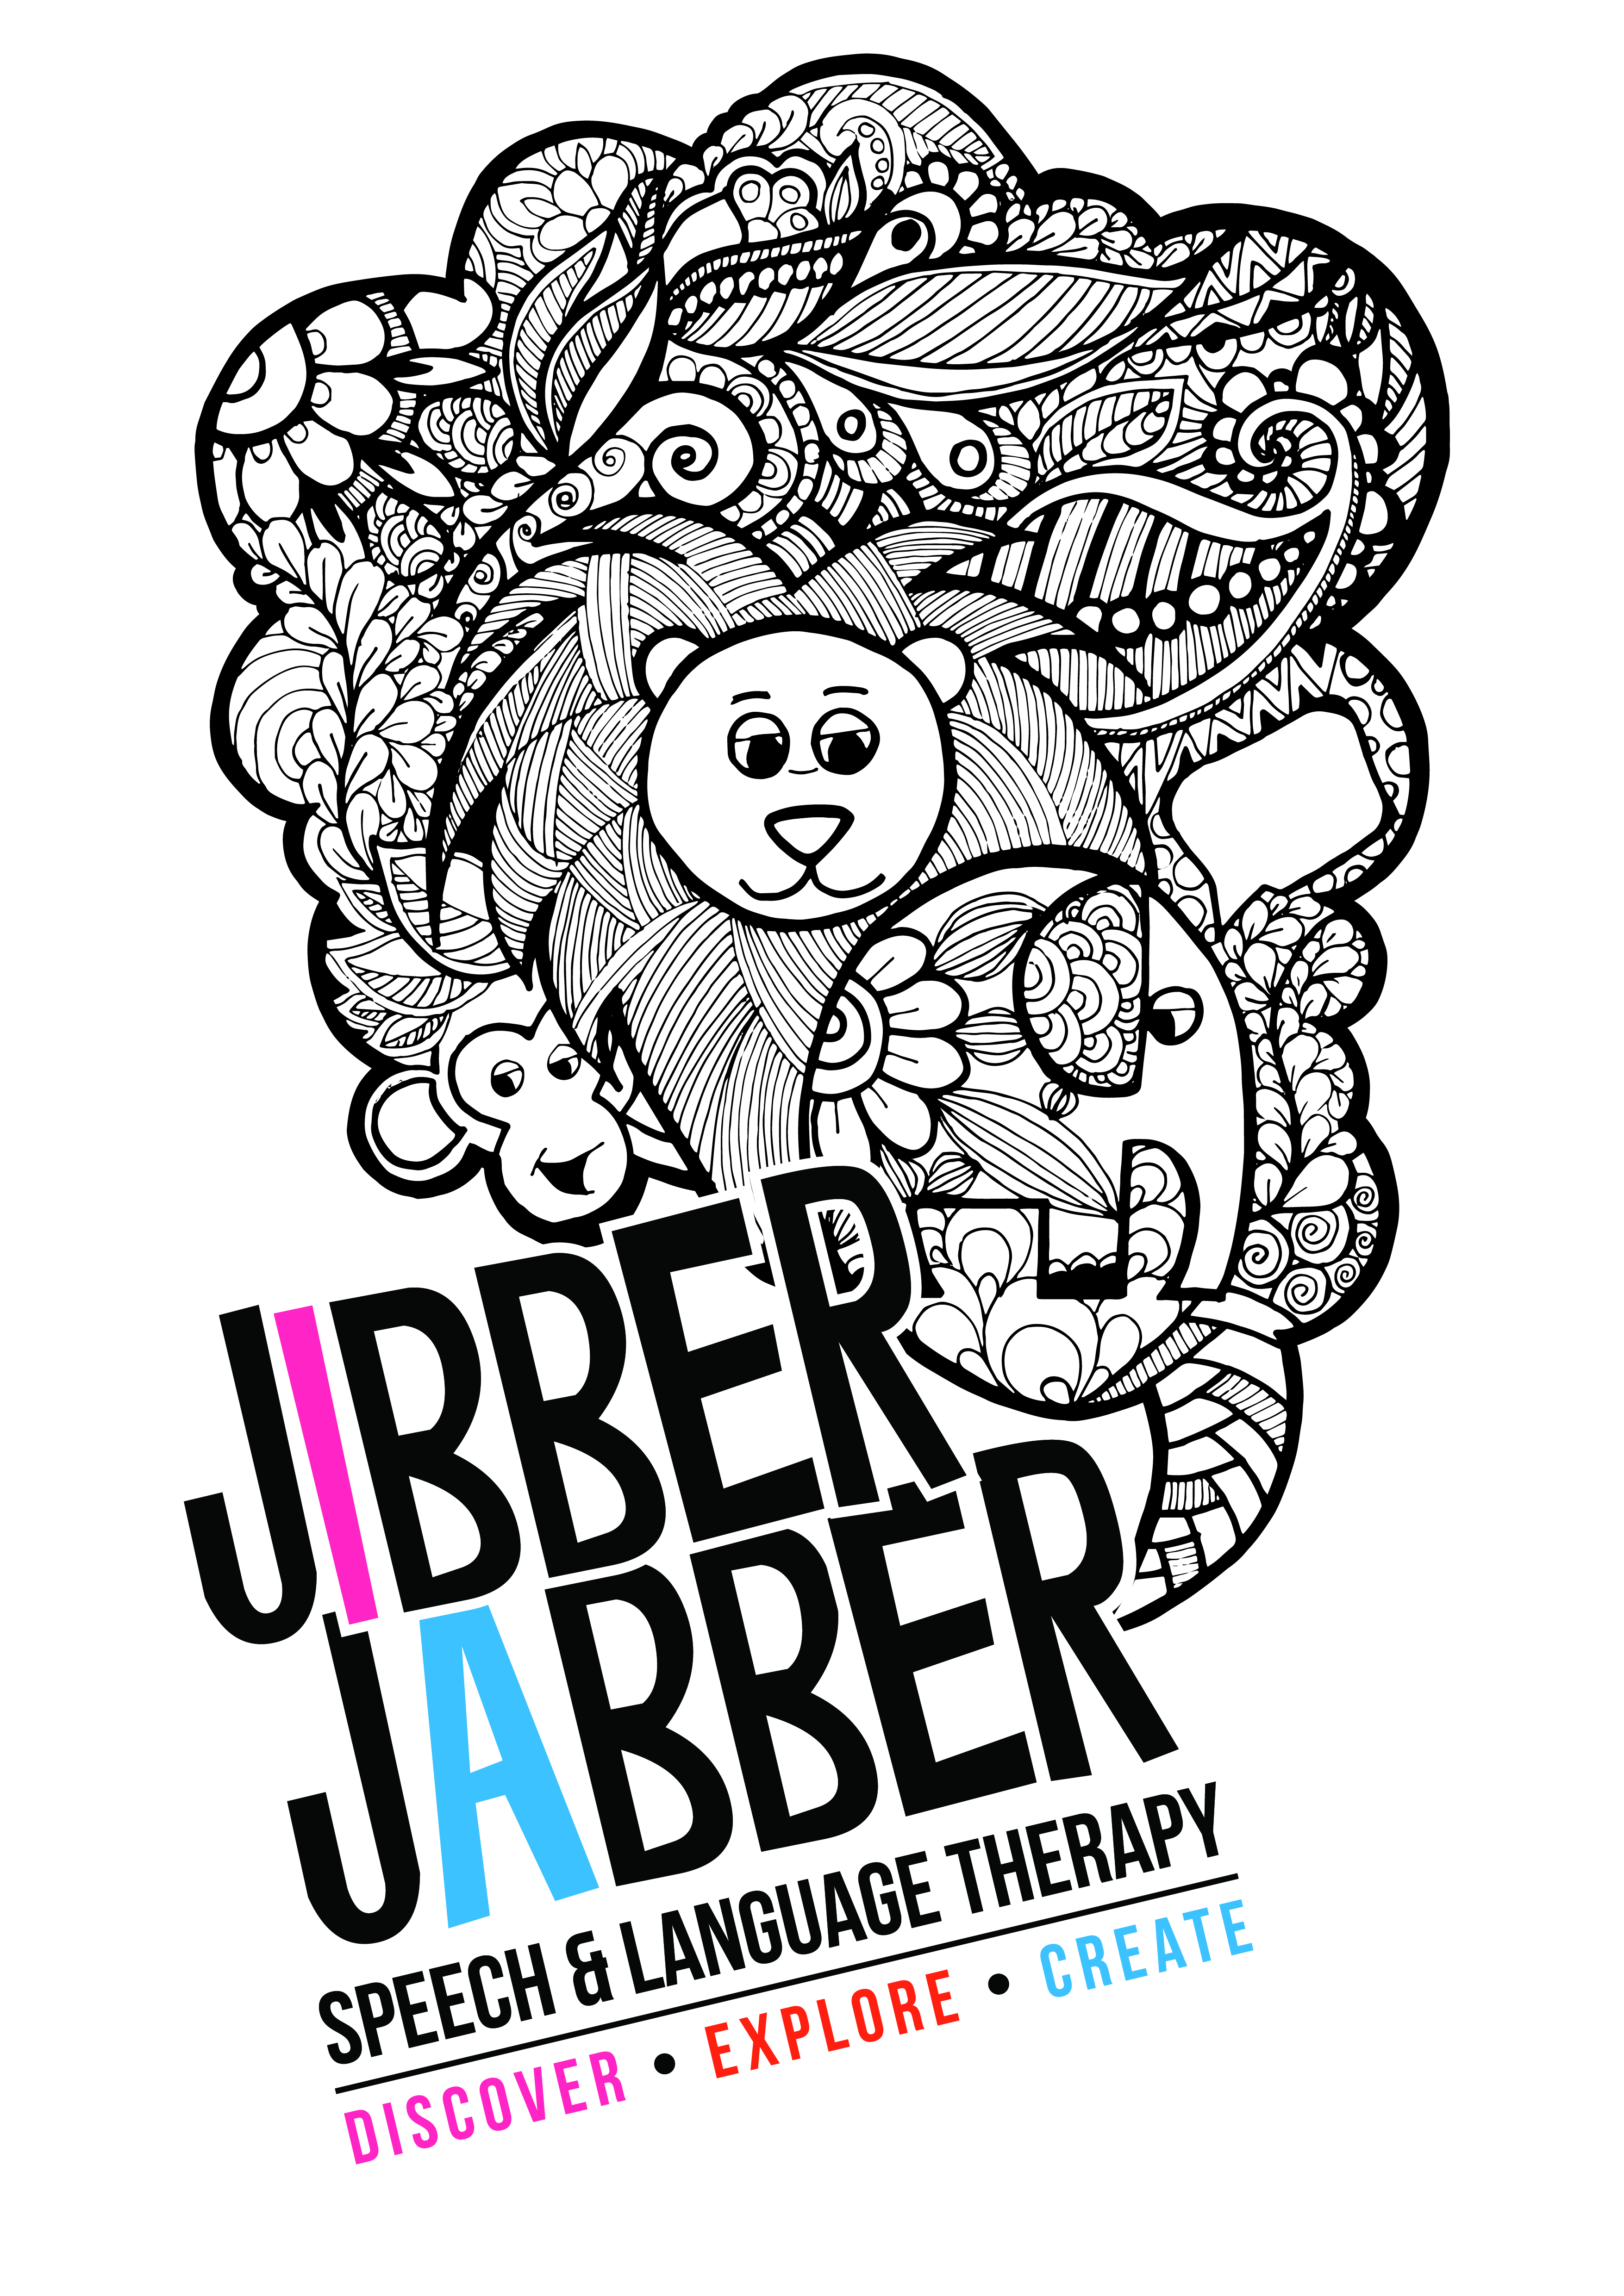 JibberJabber Speech & Language Therapy